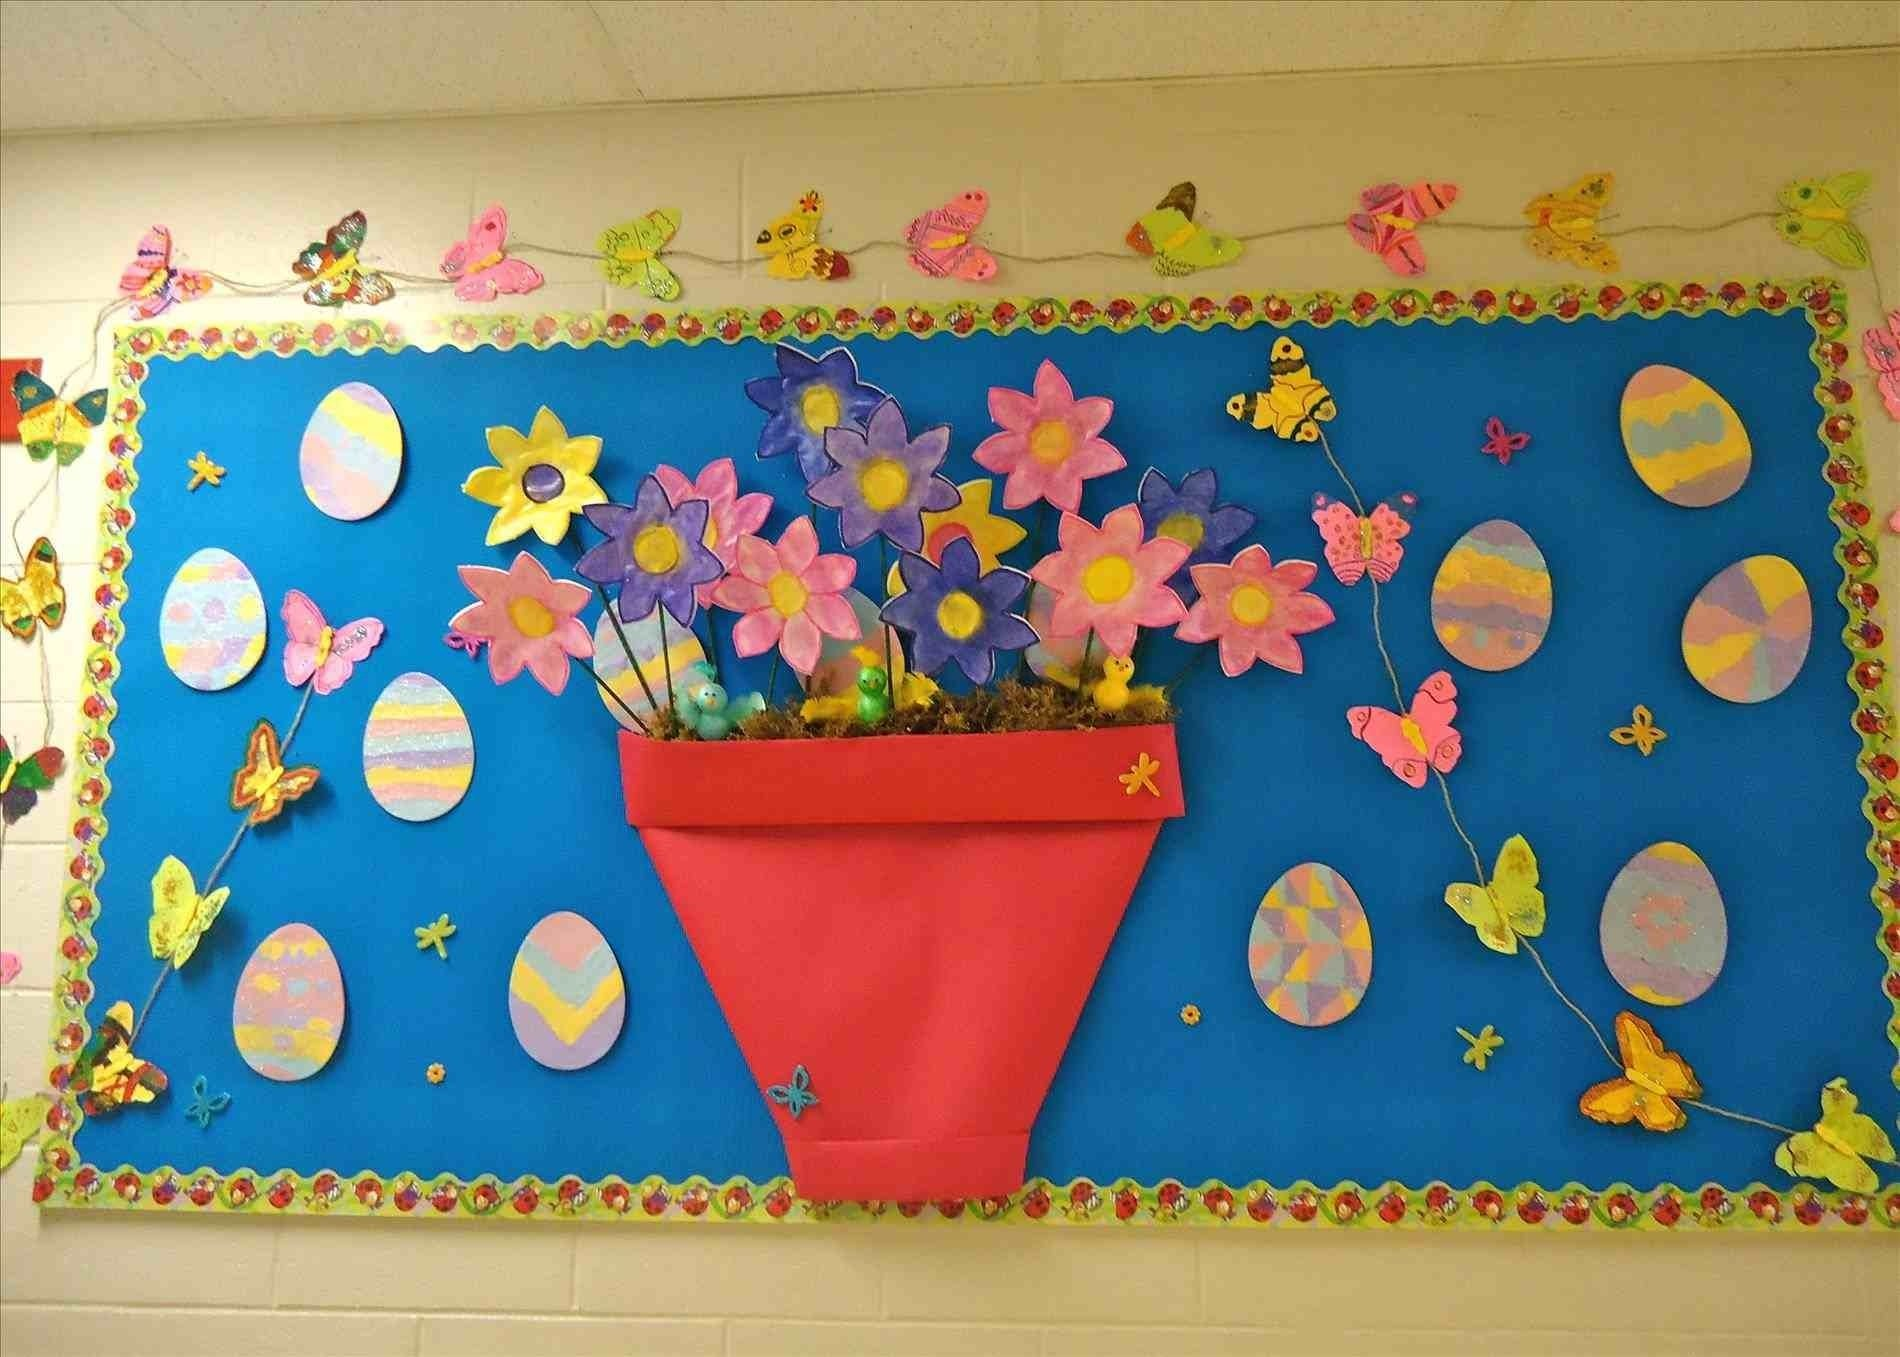 10 Most Popular Bulletin Board Ideas For Spring the images collection of j gottlieb day into spring reading bulletin